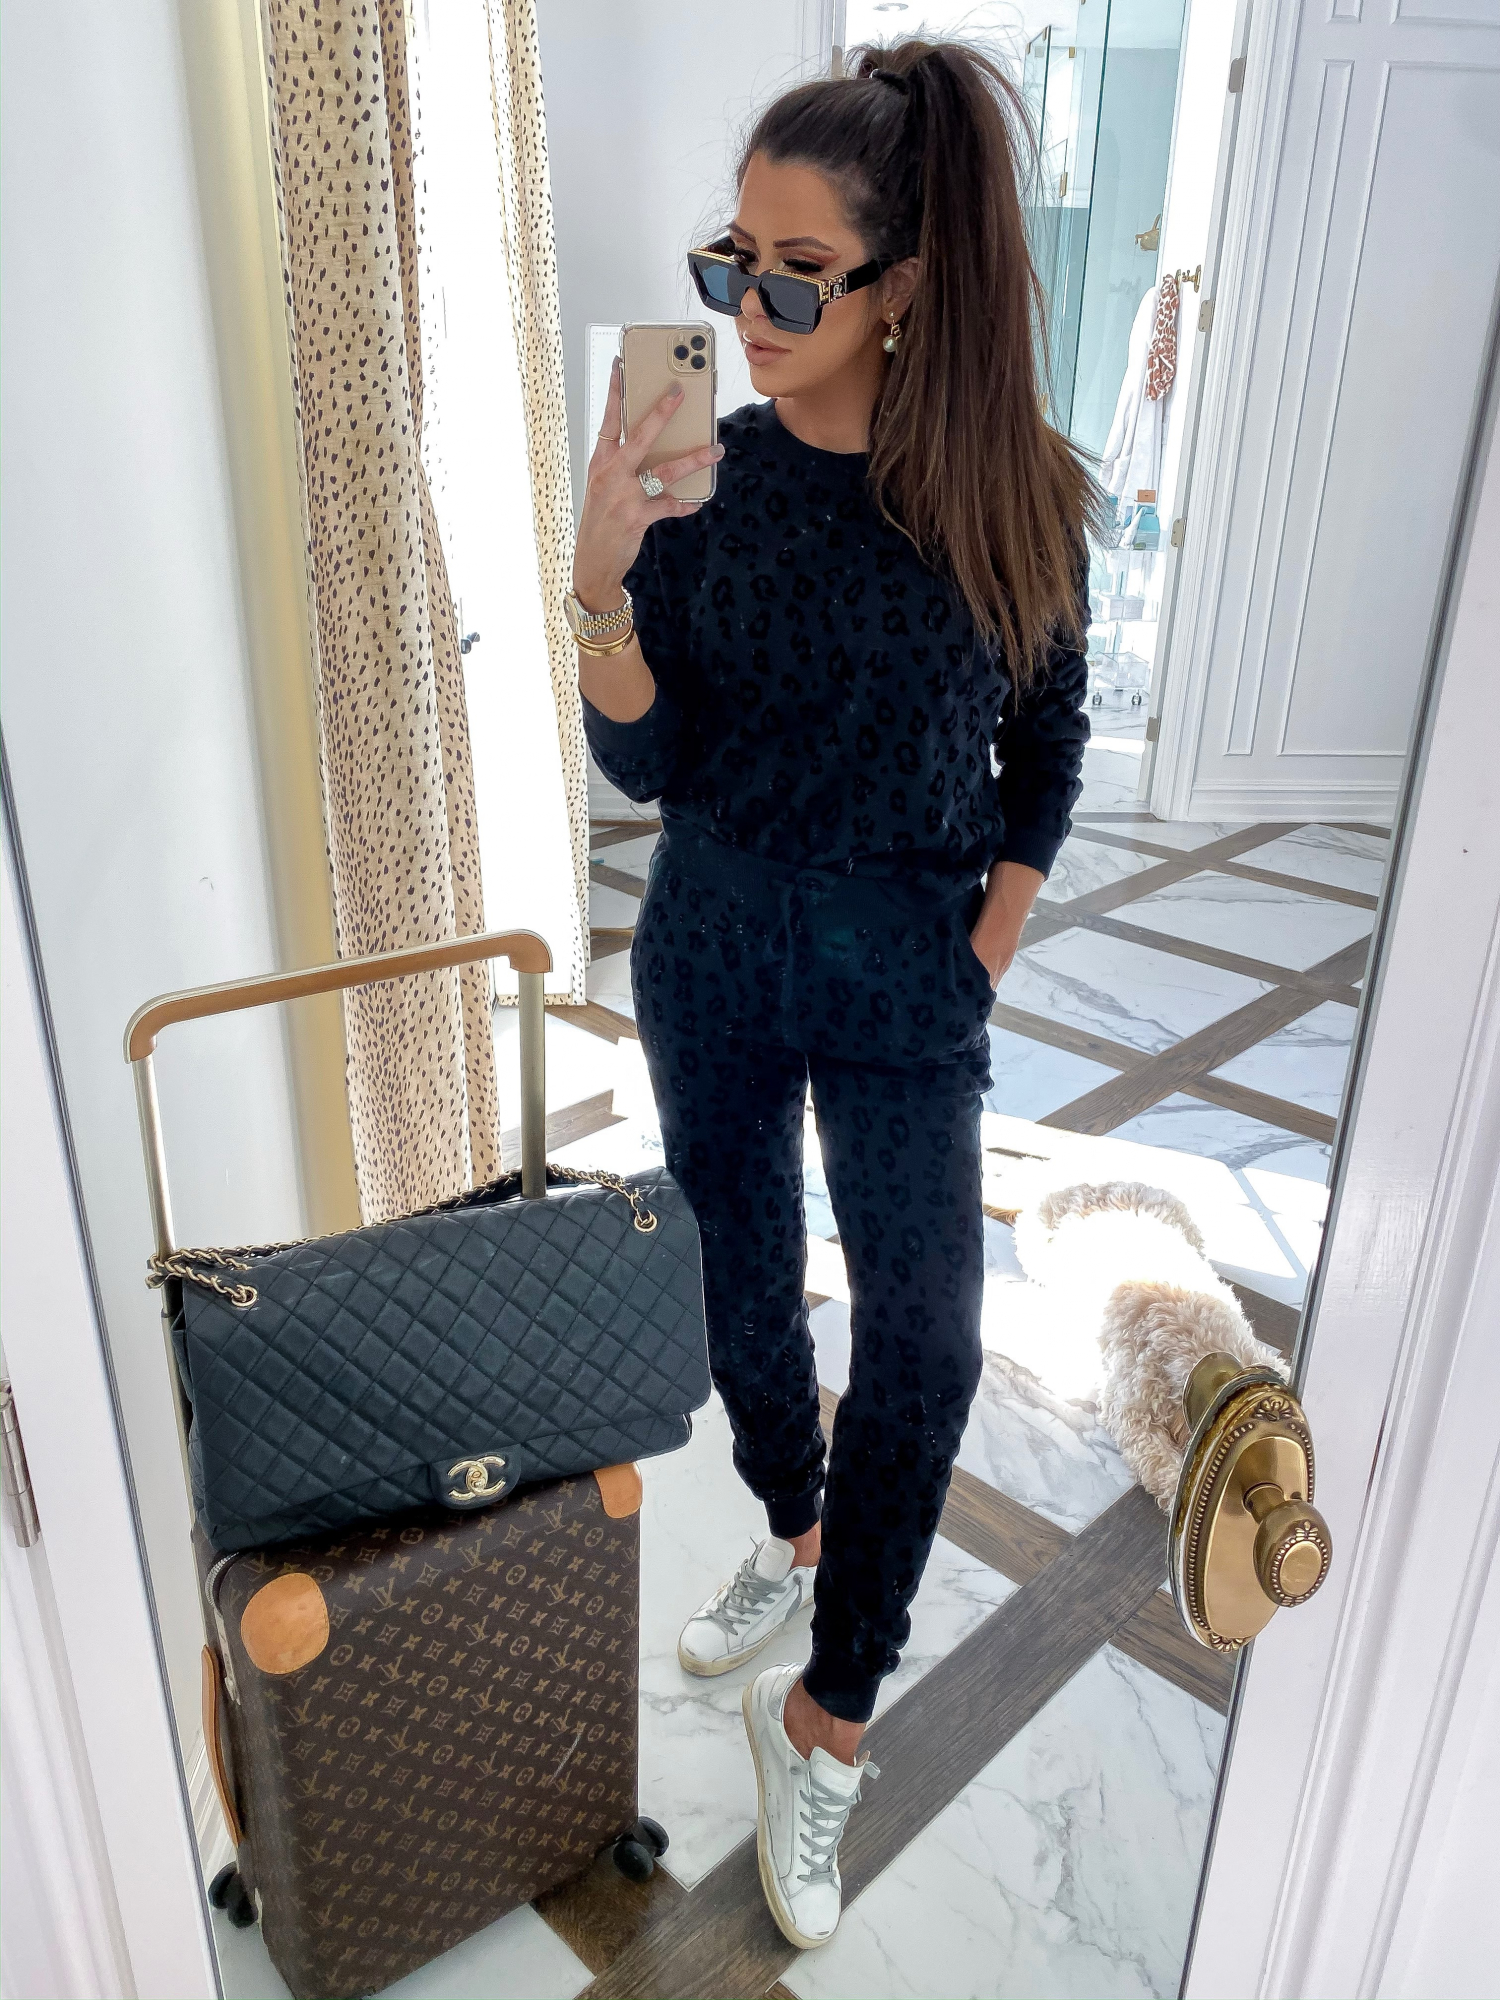 Major ShopBop Sale Alert‼️[25% Off My Most Popular Outfits!] by popular Oklahoma fashion blog, The Sweetest Thing: image of a woman wearing ShopBop black spotted sweatshirt and ShopBop black spotted joggers.